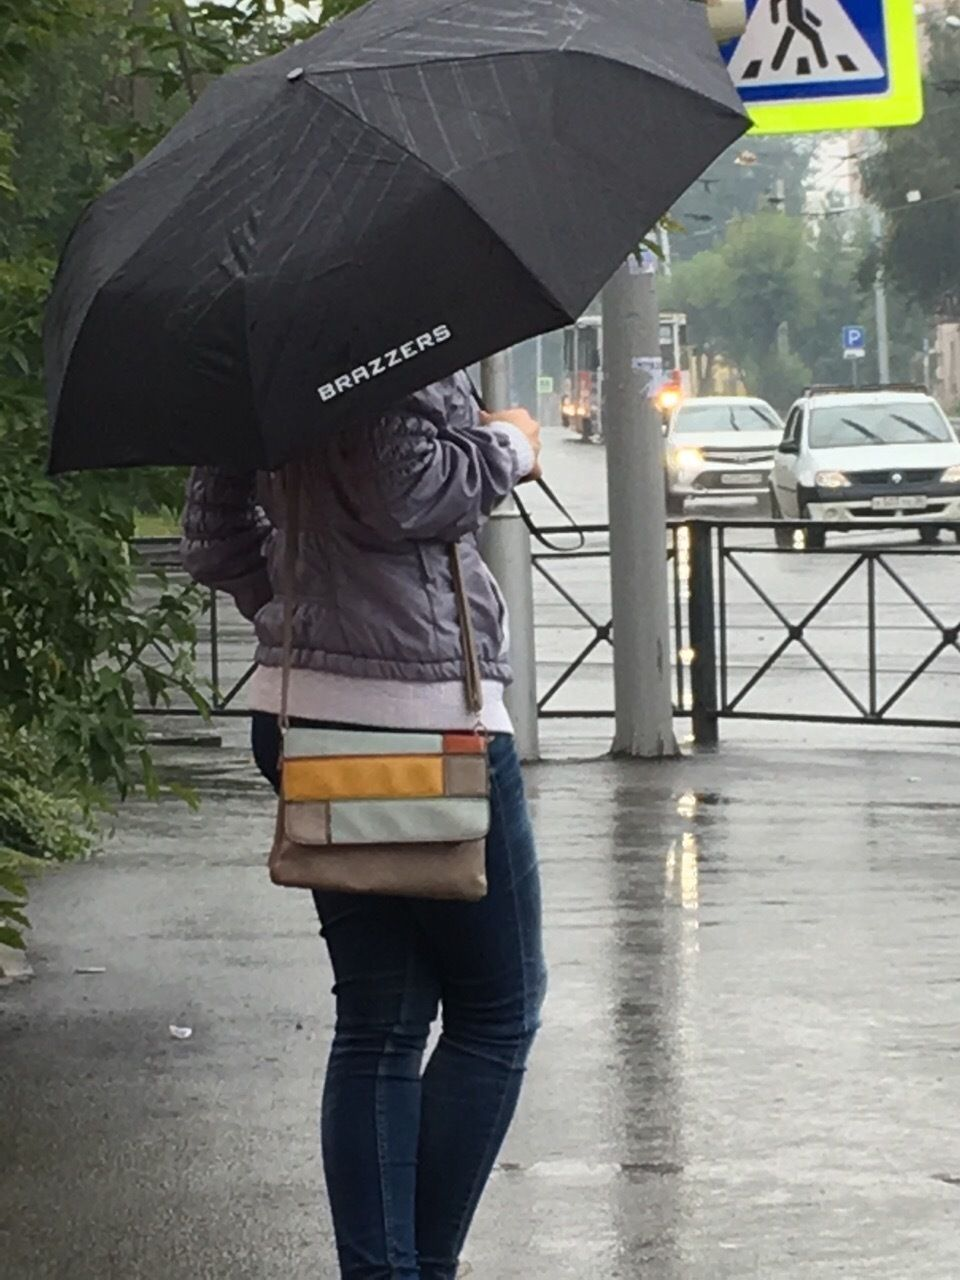 The moment you were paid with umbrella...